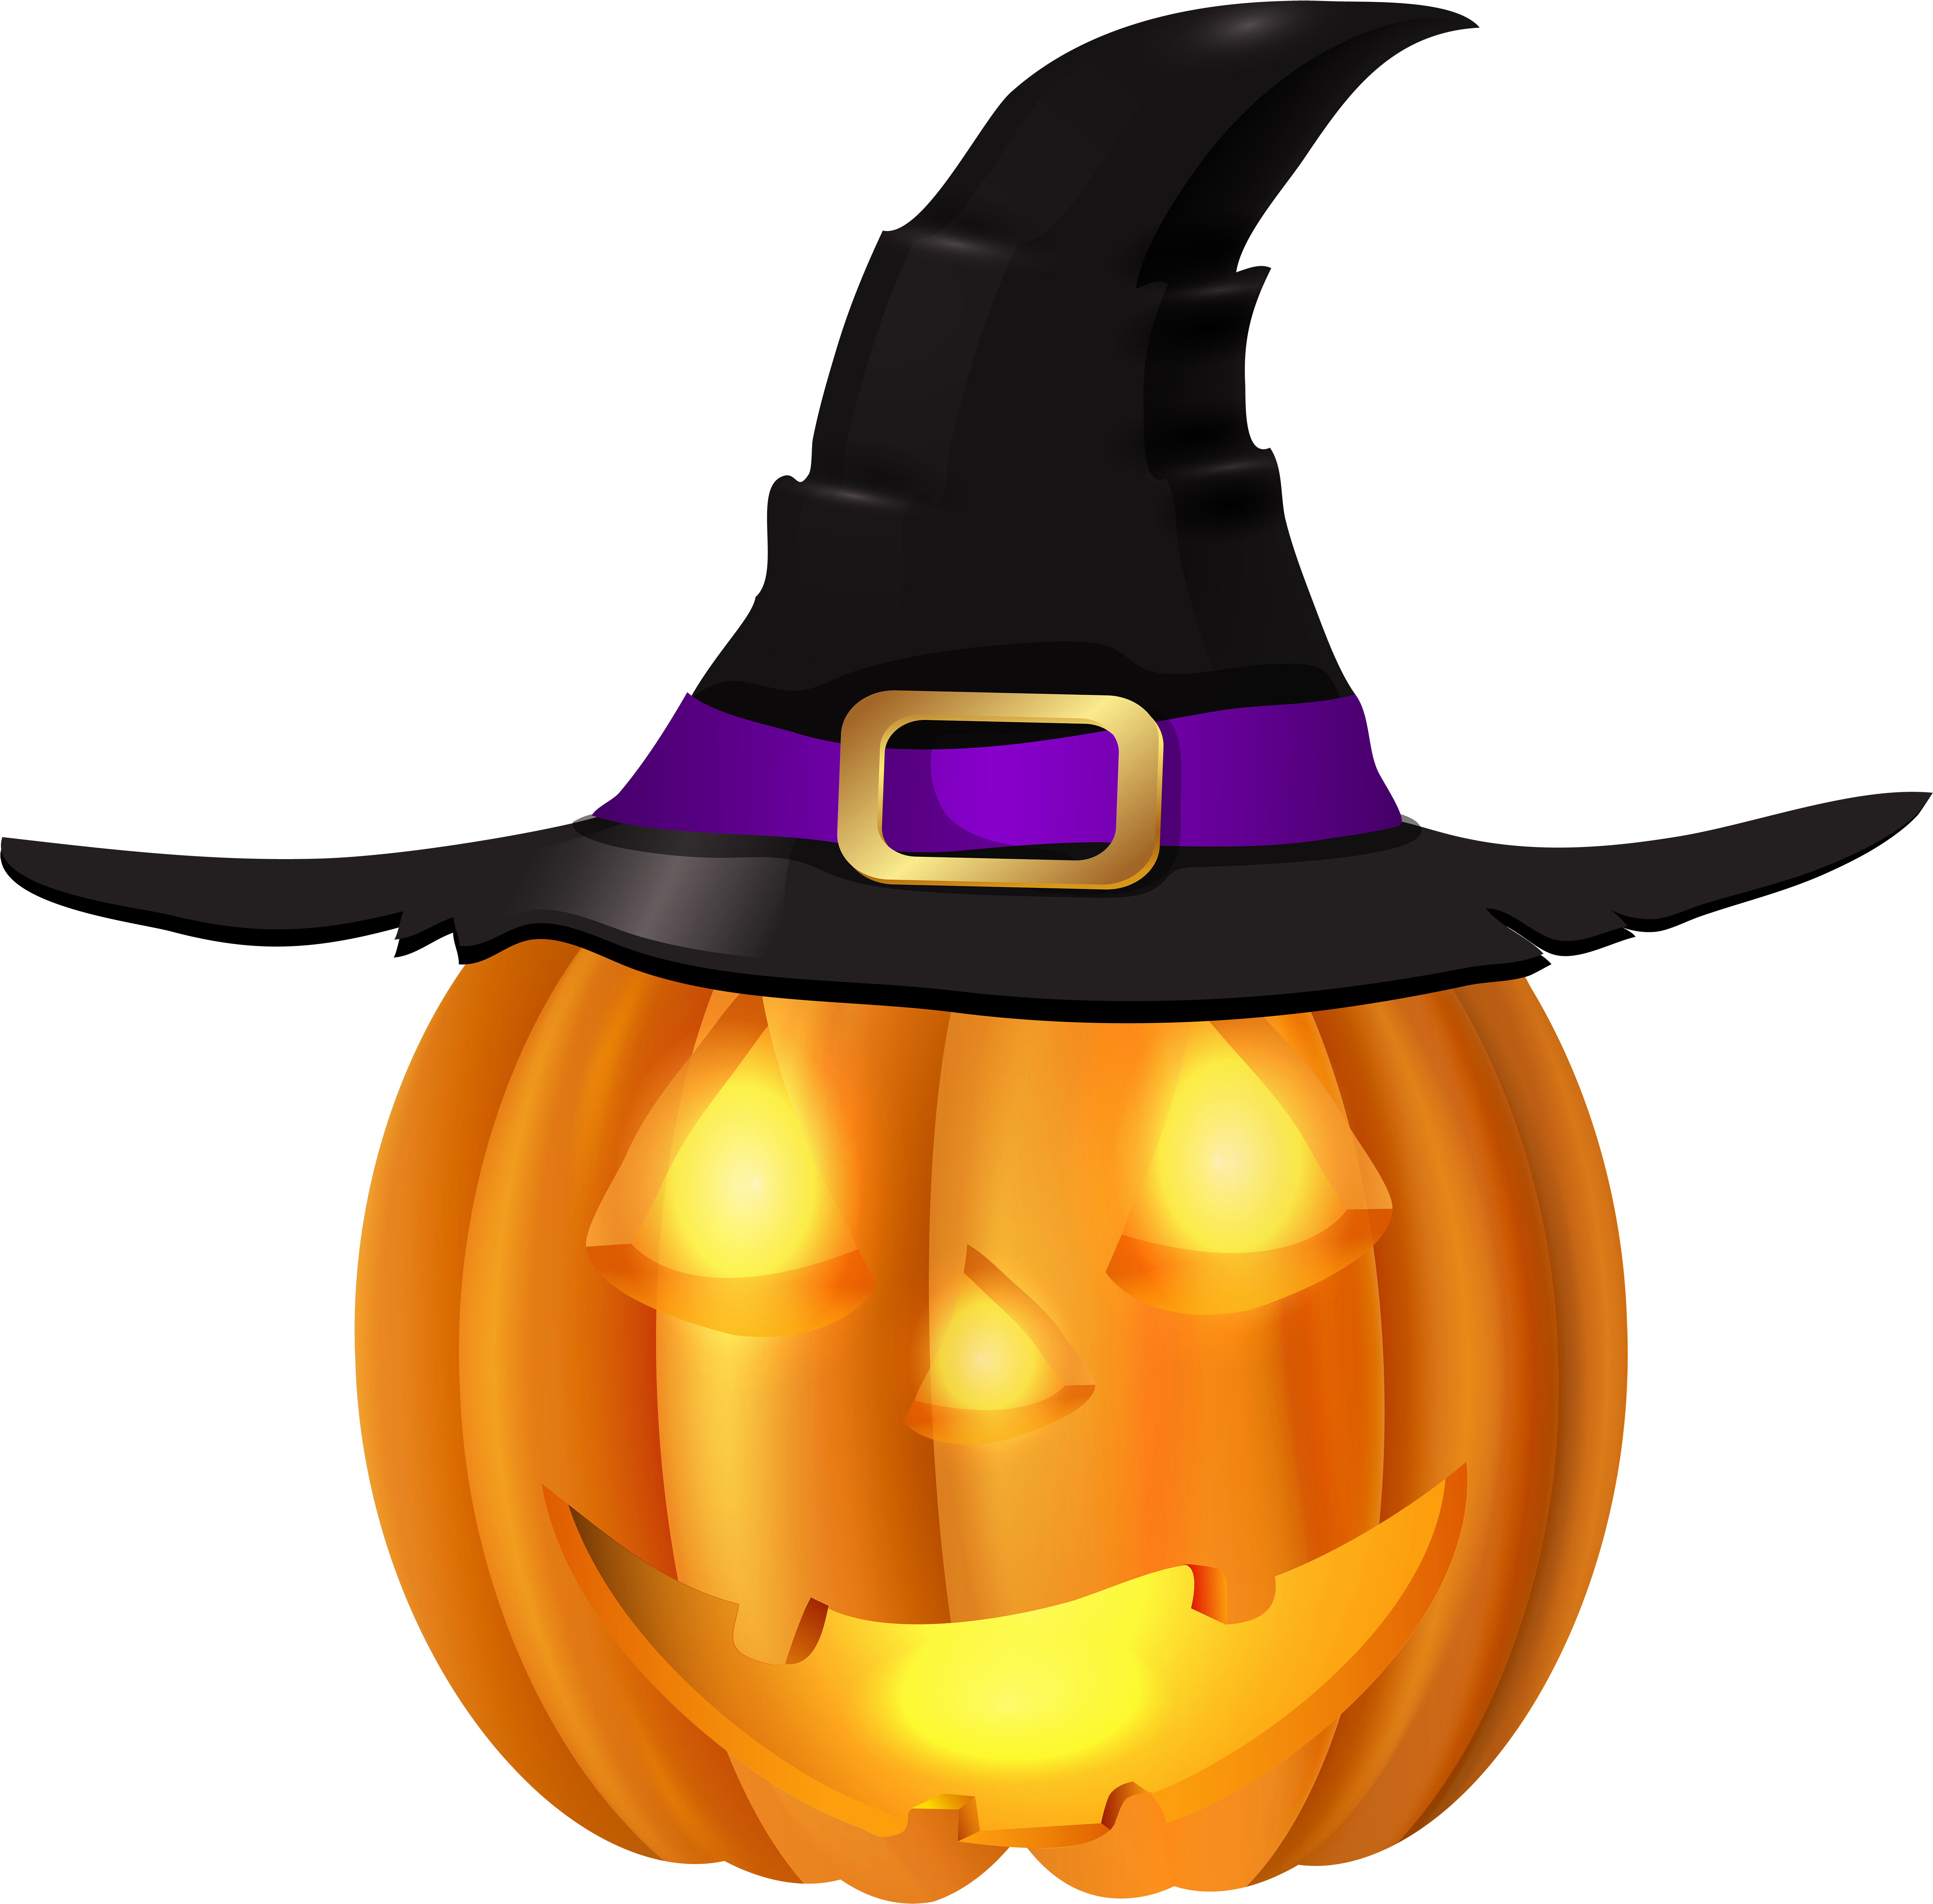 Halloween witch hat png. Download pumpkin with clip